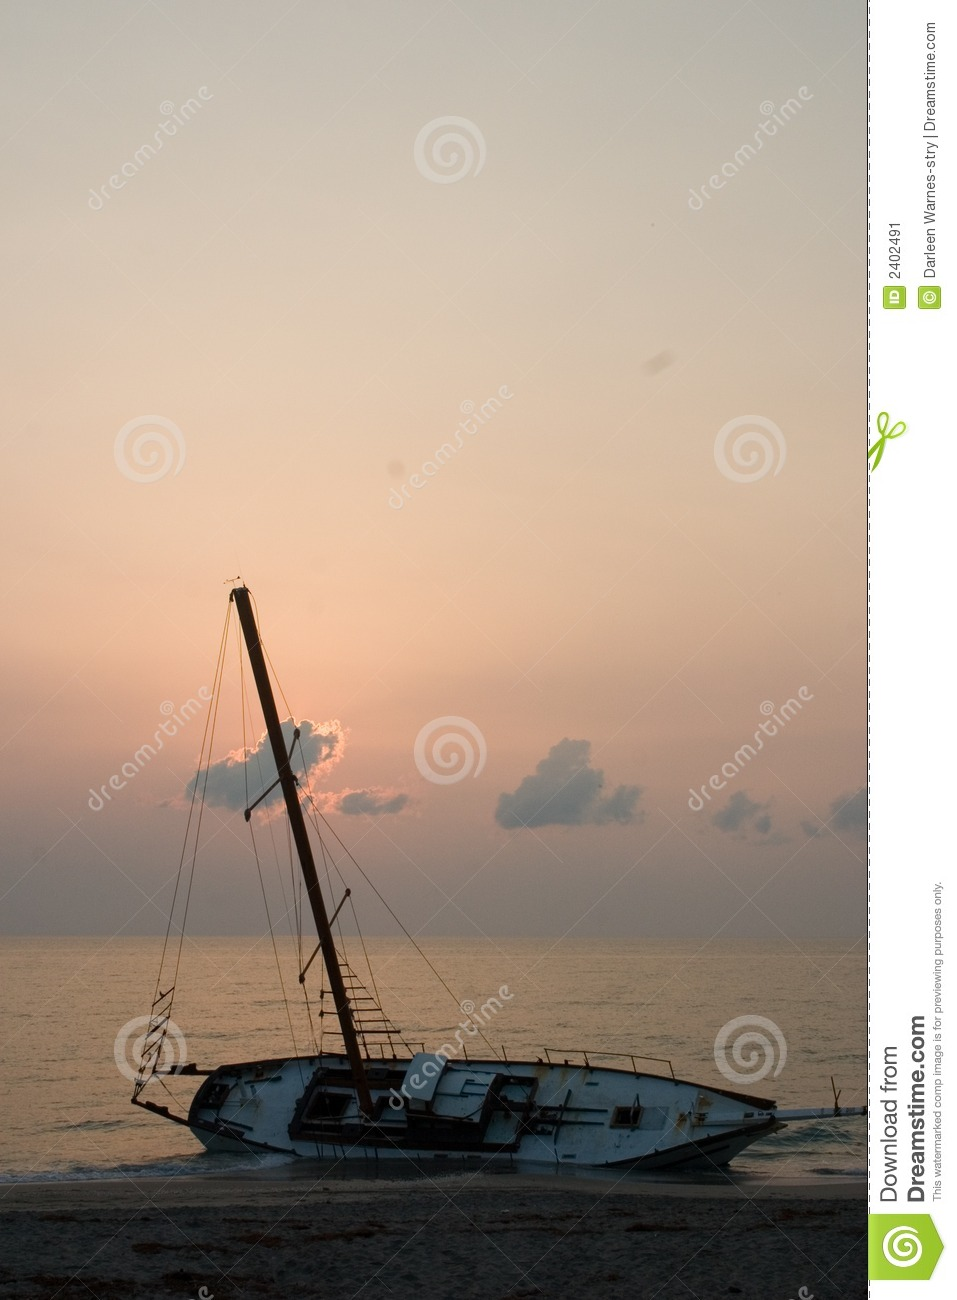 Beached Sailboat Shipwreck II Stock Image - Image of